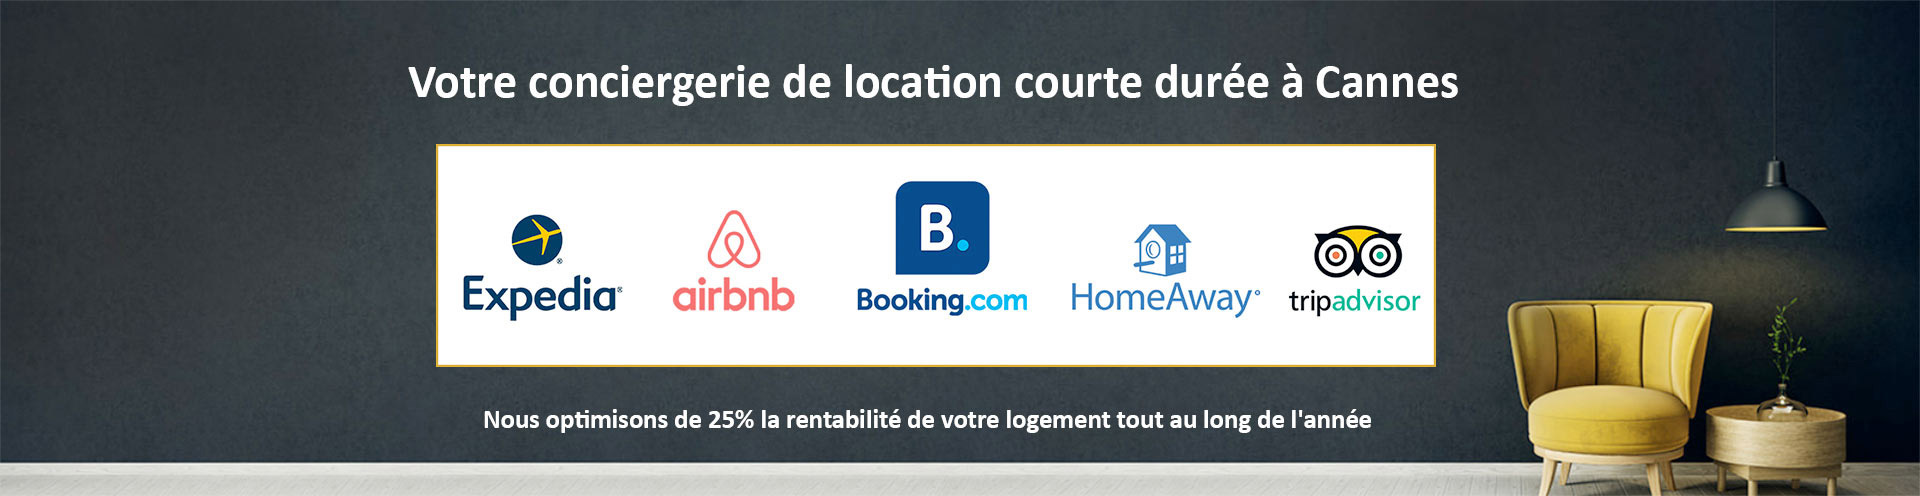 YourHostHelper – Conciergerie à Cannes